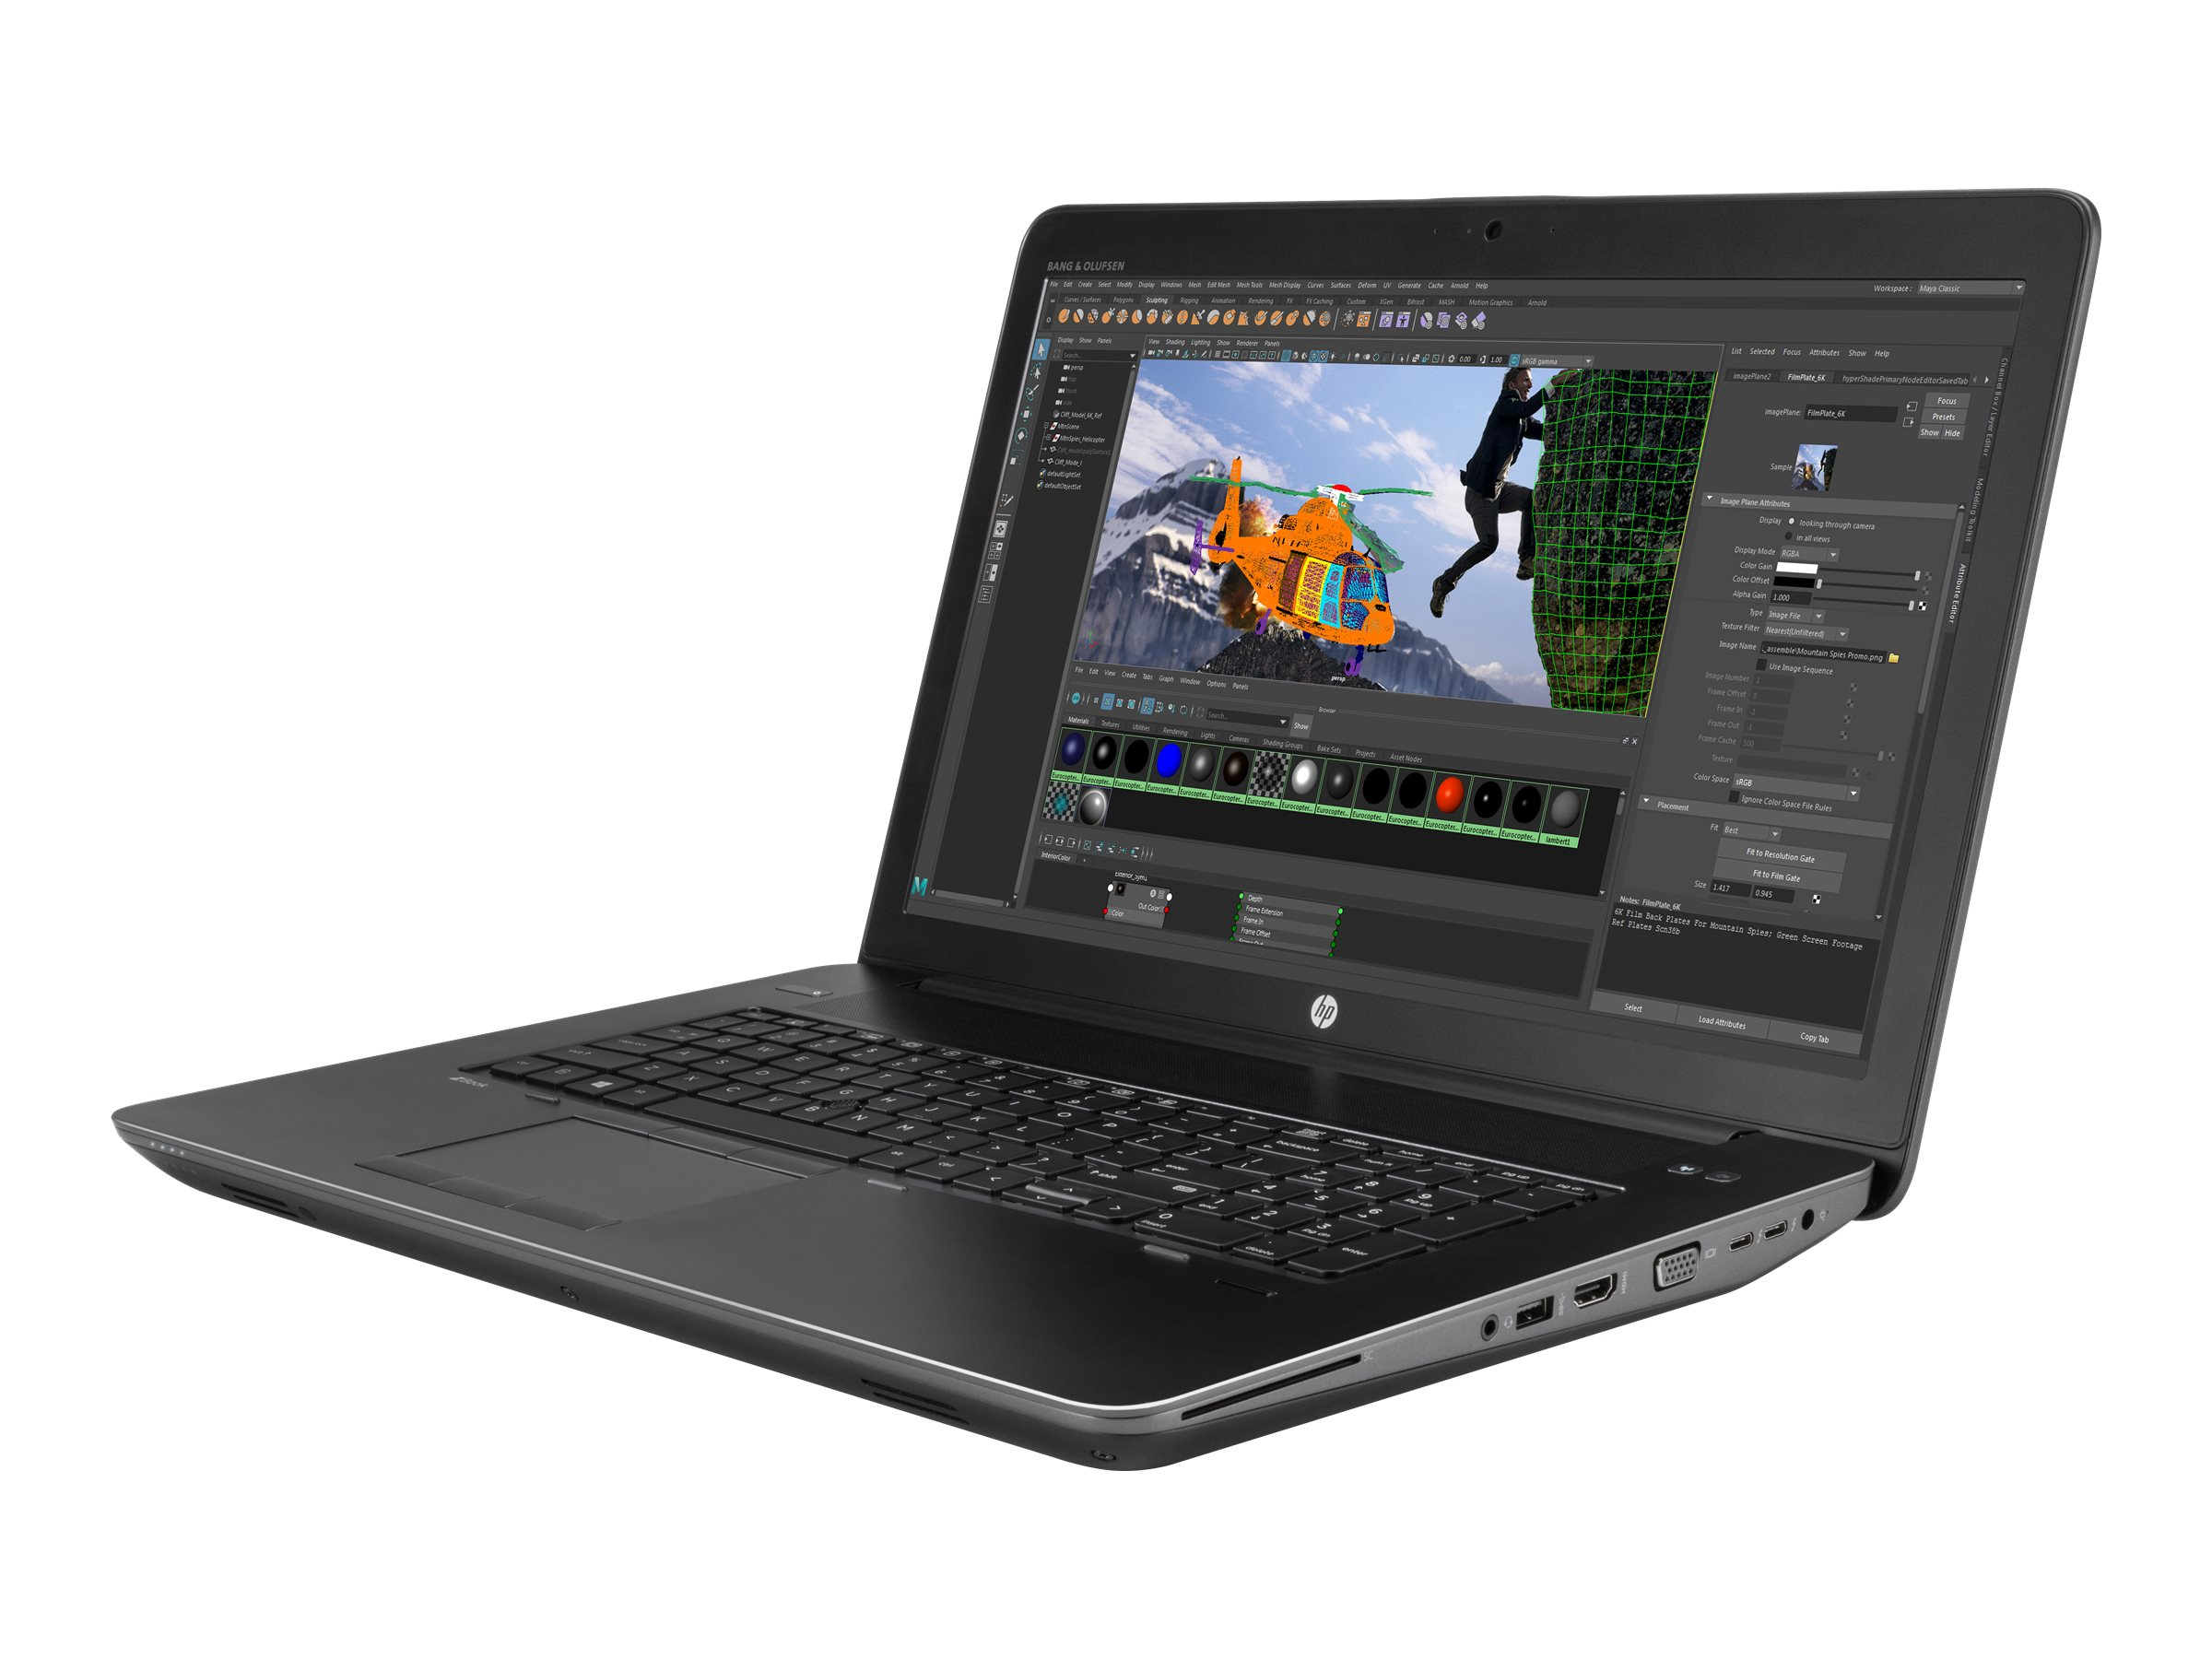 HP ZBook 17 G4 Core i7 2.8GHz 8GB 256GB W10P64